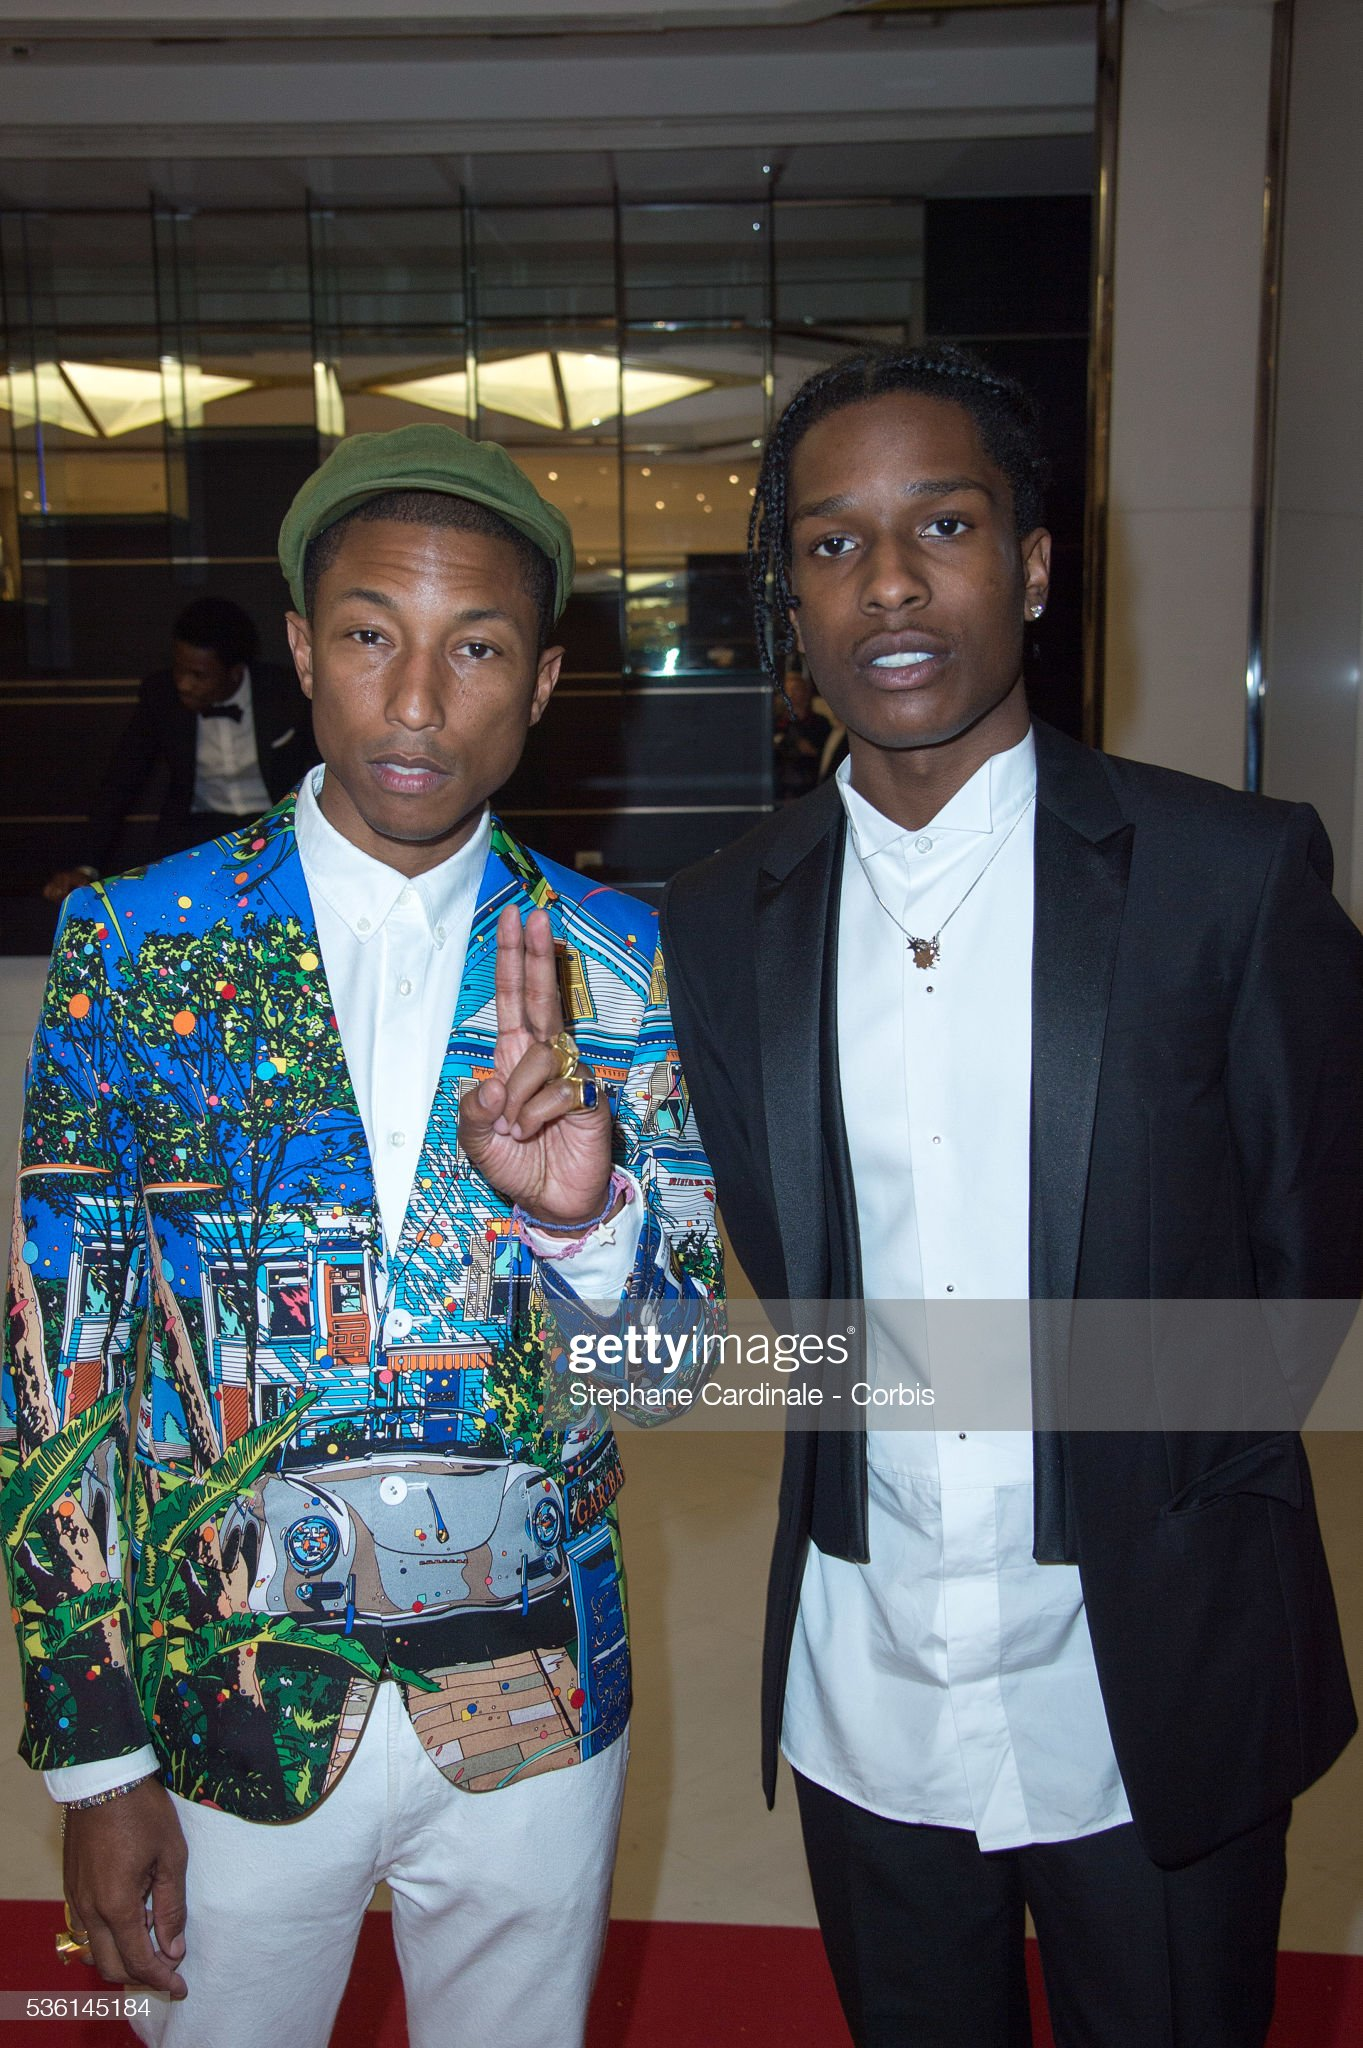 ¿Cuánto mide Pharrell Williams? - Altura - Real height Pharrell-williams-and-asap-rocky-attends-the-dope-premiere-for-the-picture-id536145184?s=2048x2048